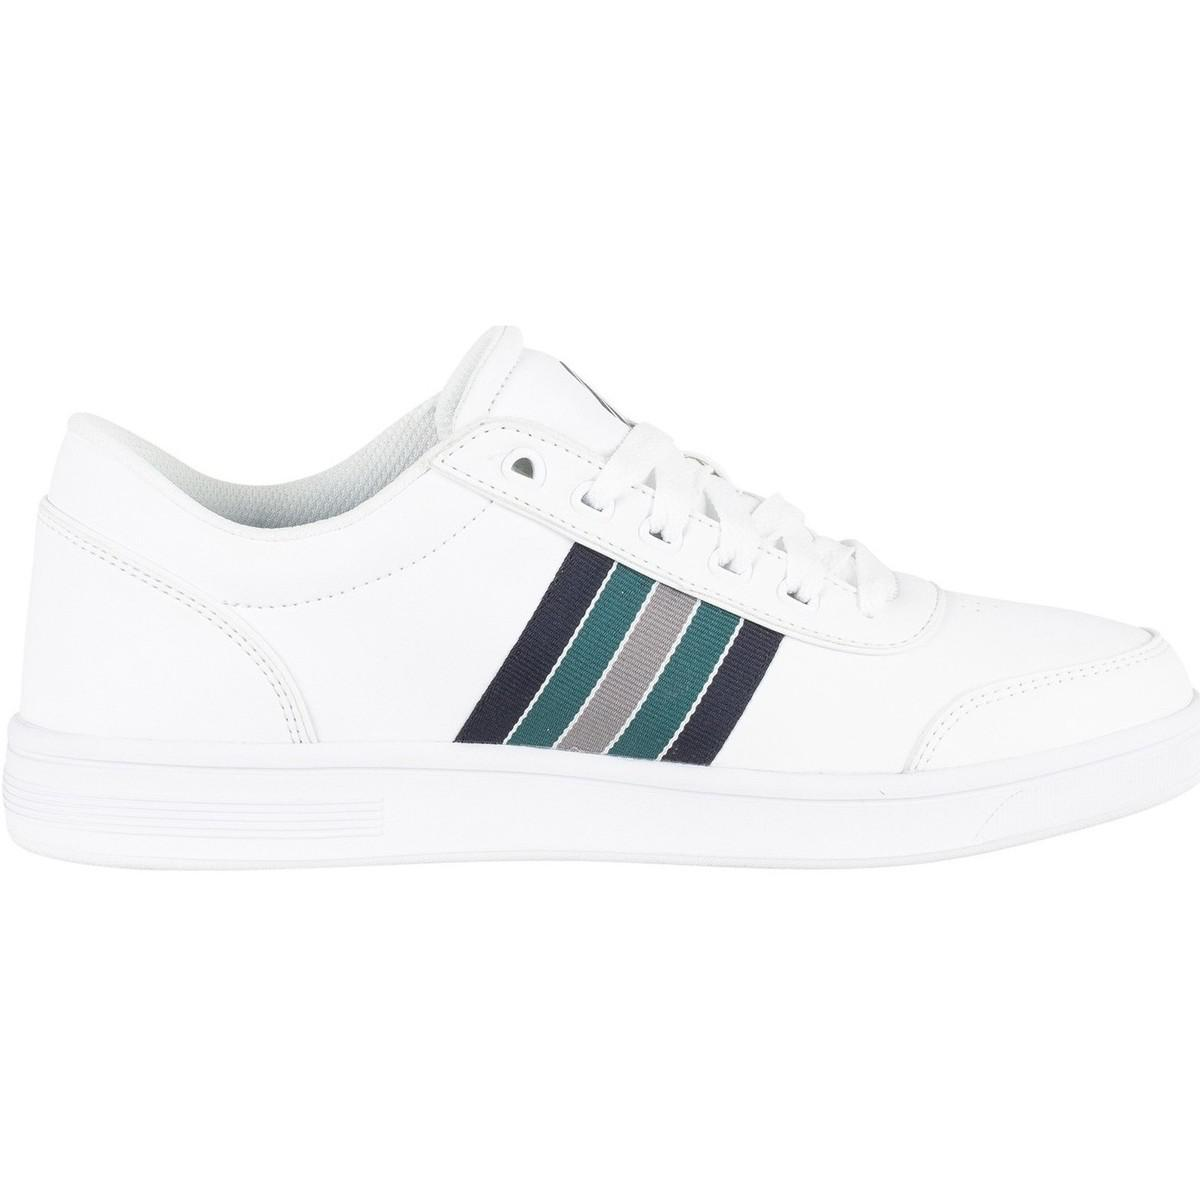 K-swiss Men's Court Clarkson S Trainers, White Men's Shoes (trainers) In White for Men